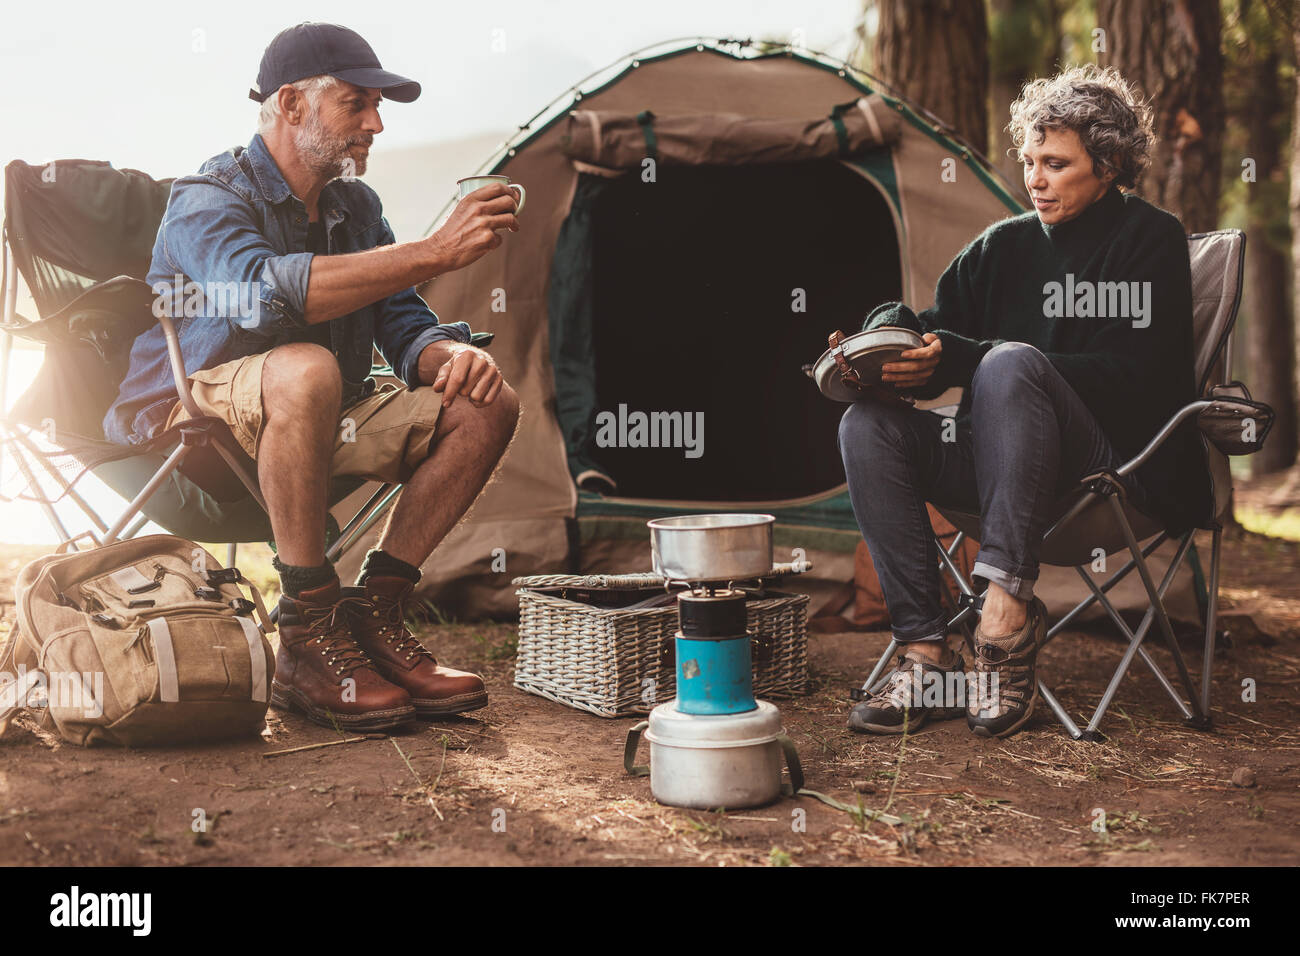 Couple sitting at their campsite, with man drink coffee. Senior couple camping in nature. - Stock Image